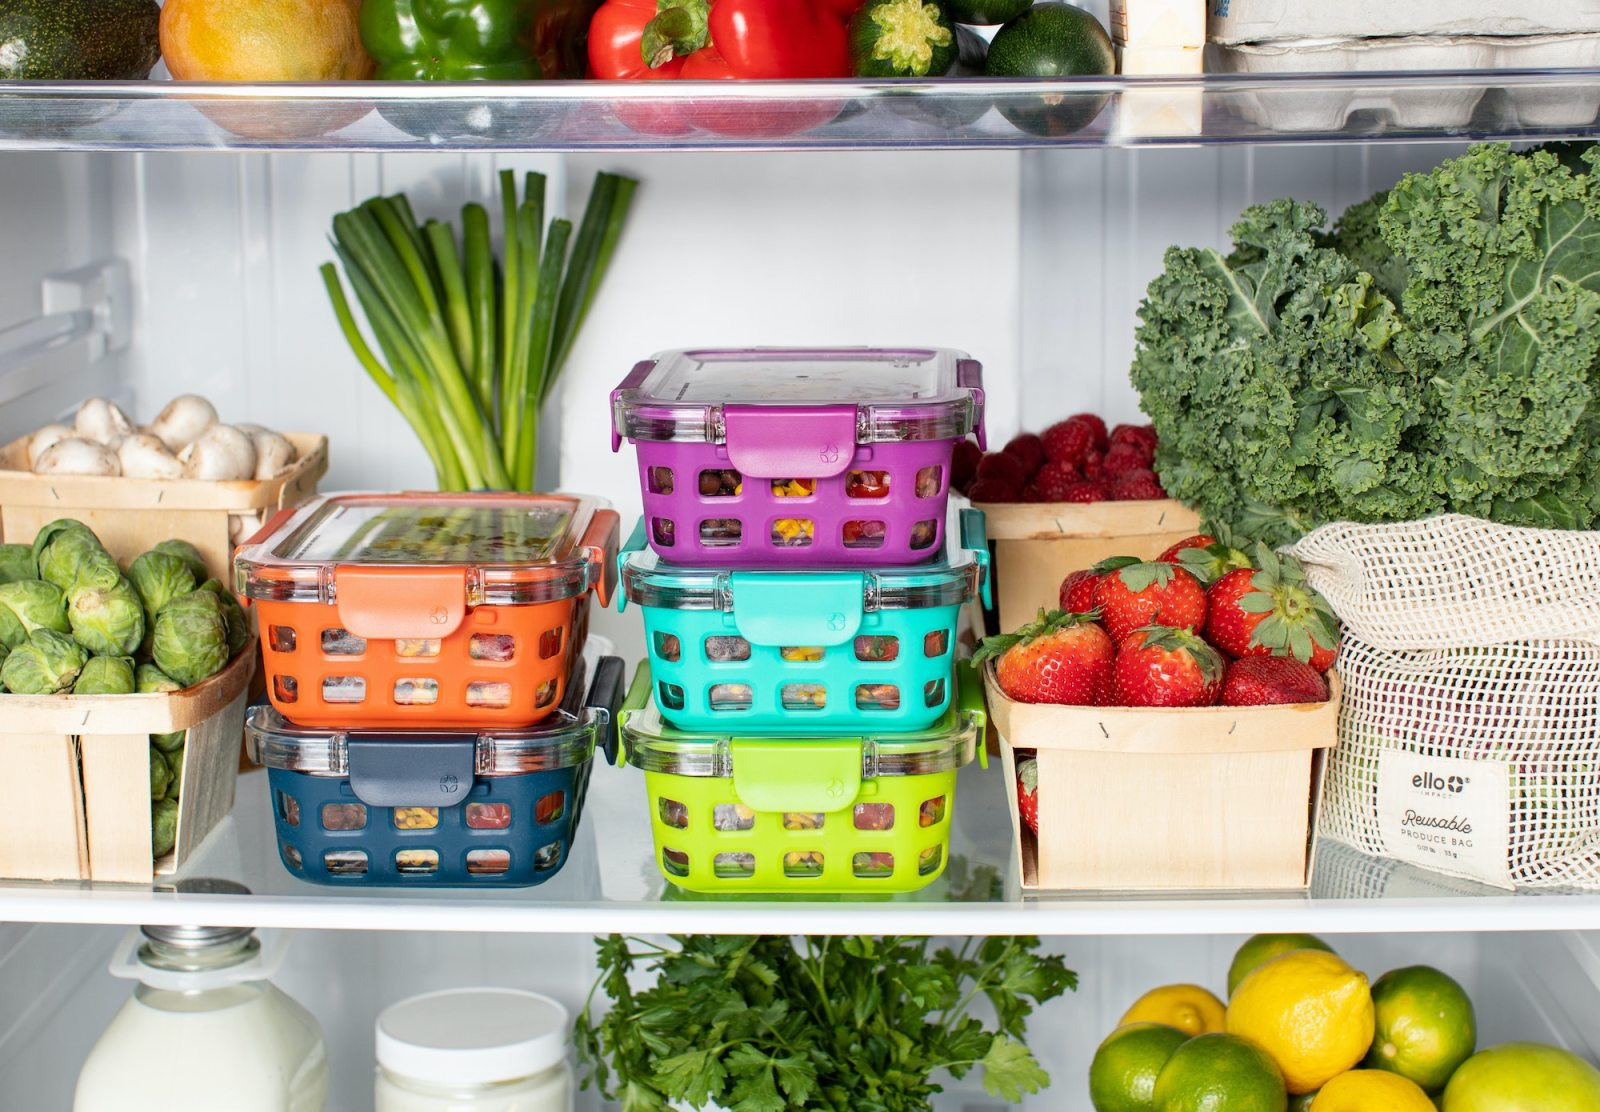 How to Reduce Food Waste   Produce stored in a refrigerator